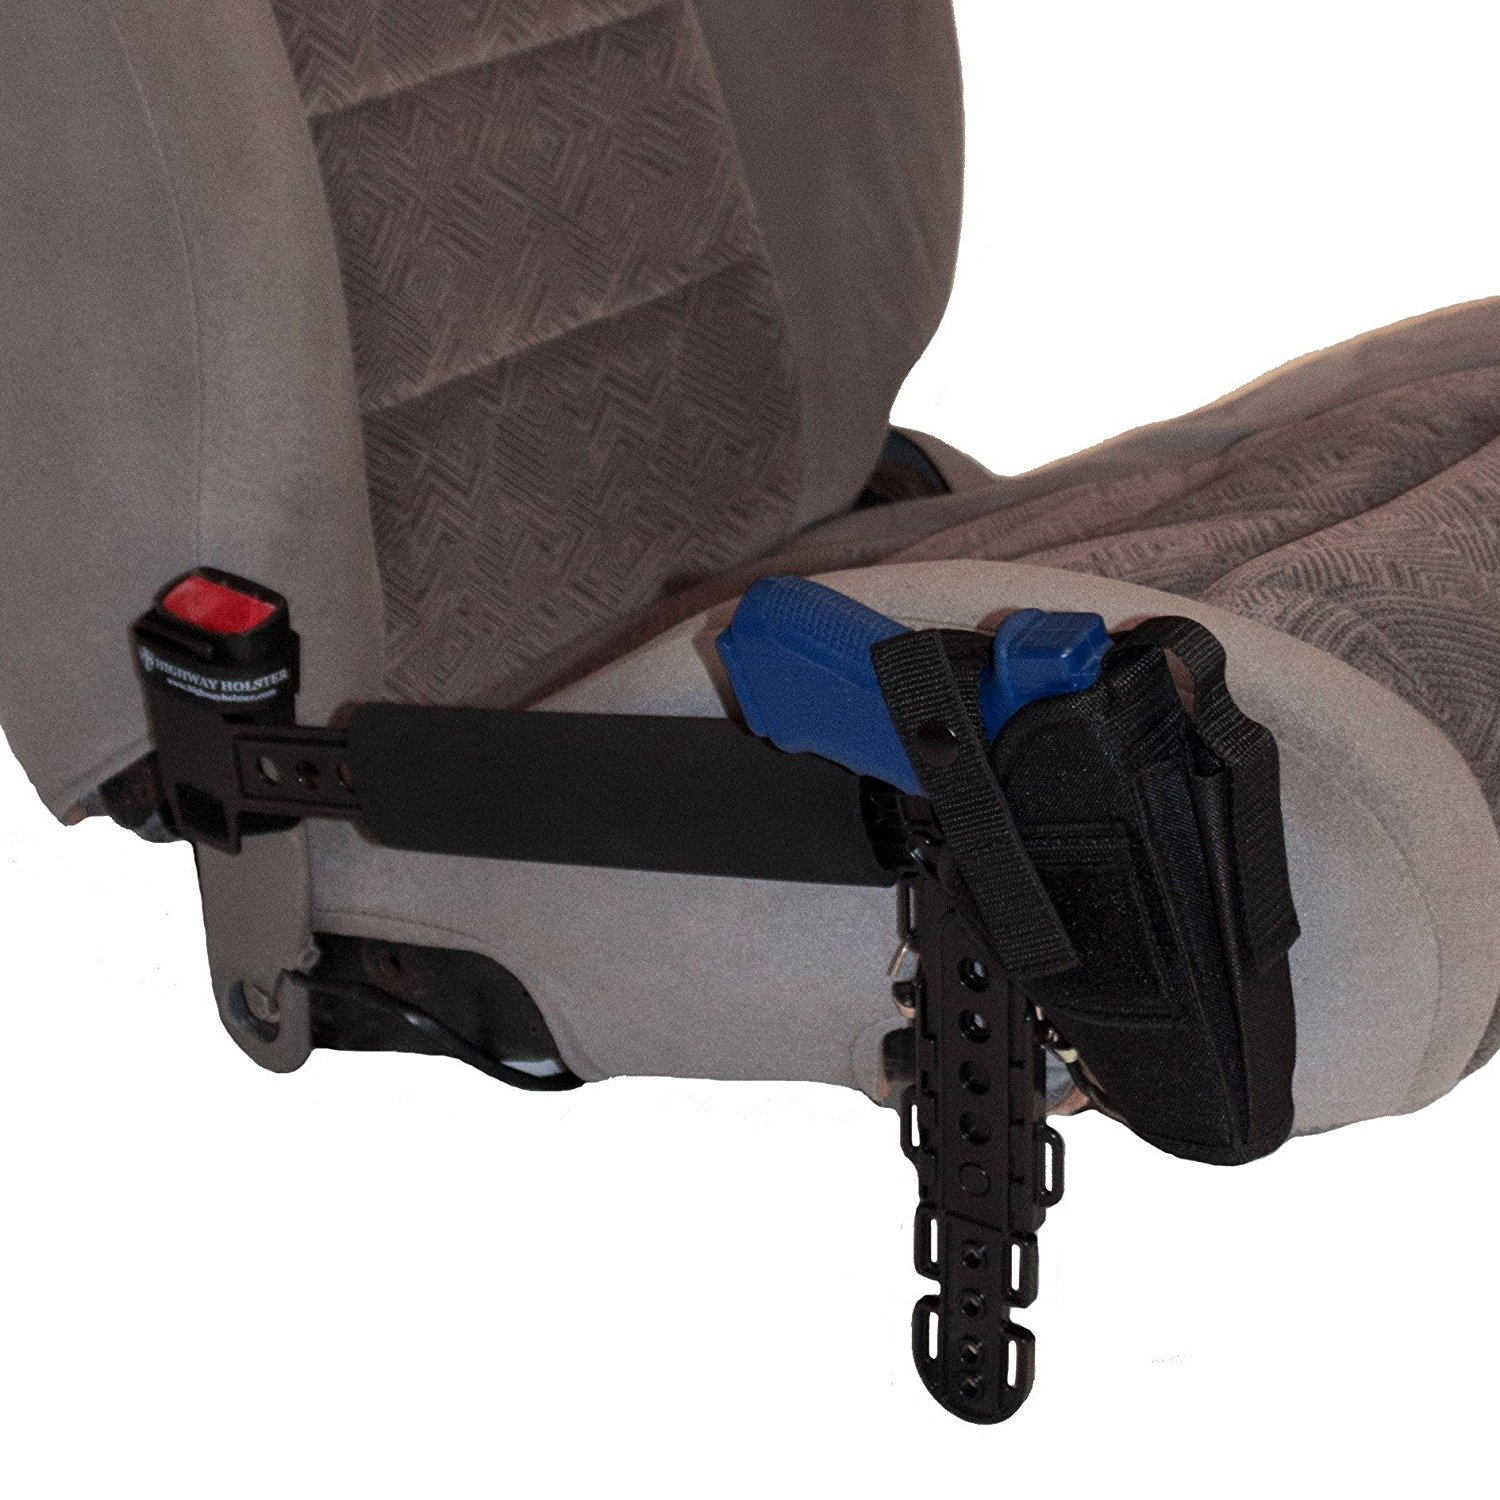 image of vehicle holster mount